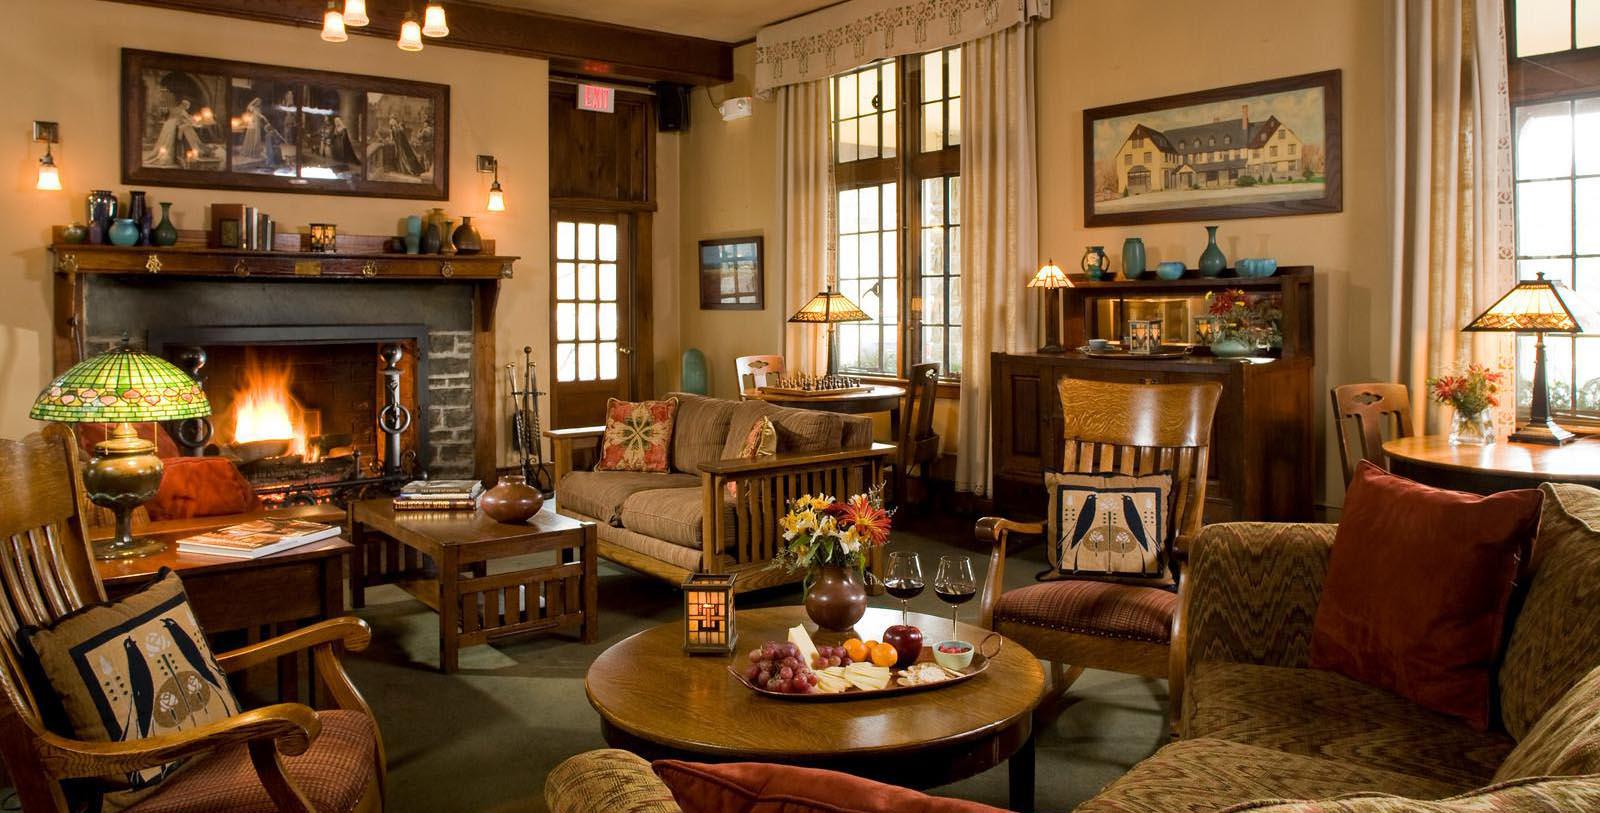 Image of Hotel Lounge at The Settlers Inn at Bingham Park, 1927, Member of Historic Hotels of America, in Hawley, Pennsylvania, Discover